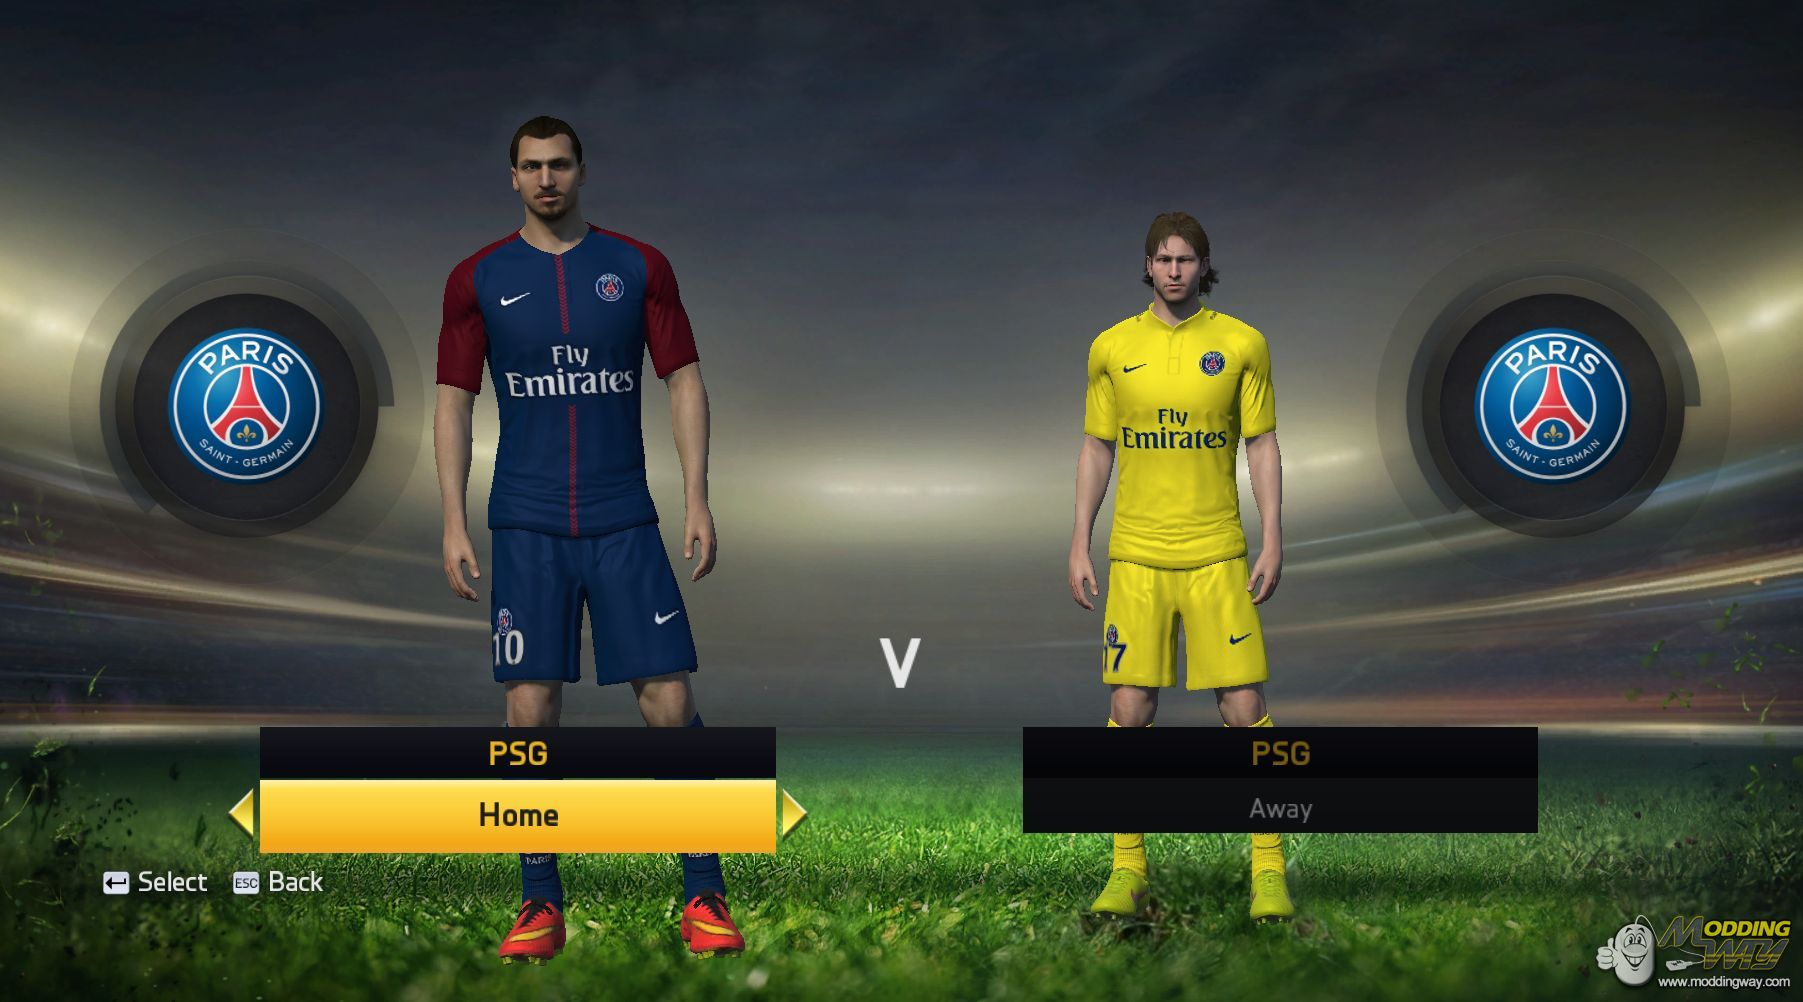 on sale c05cd 260a4 PSG 2017/18 Kits Pack by Fifa Modders - FIFA 15 at ModdingWay